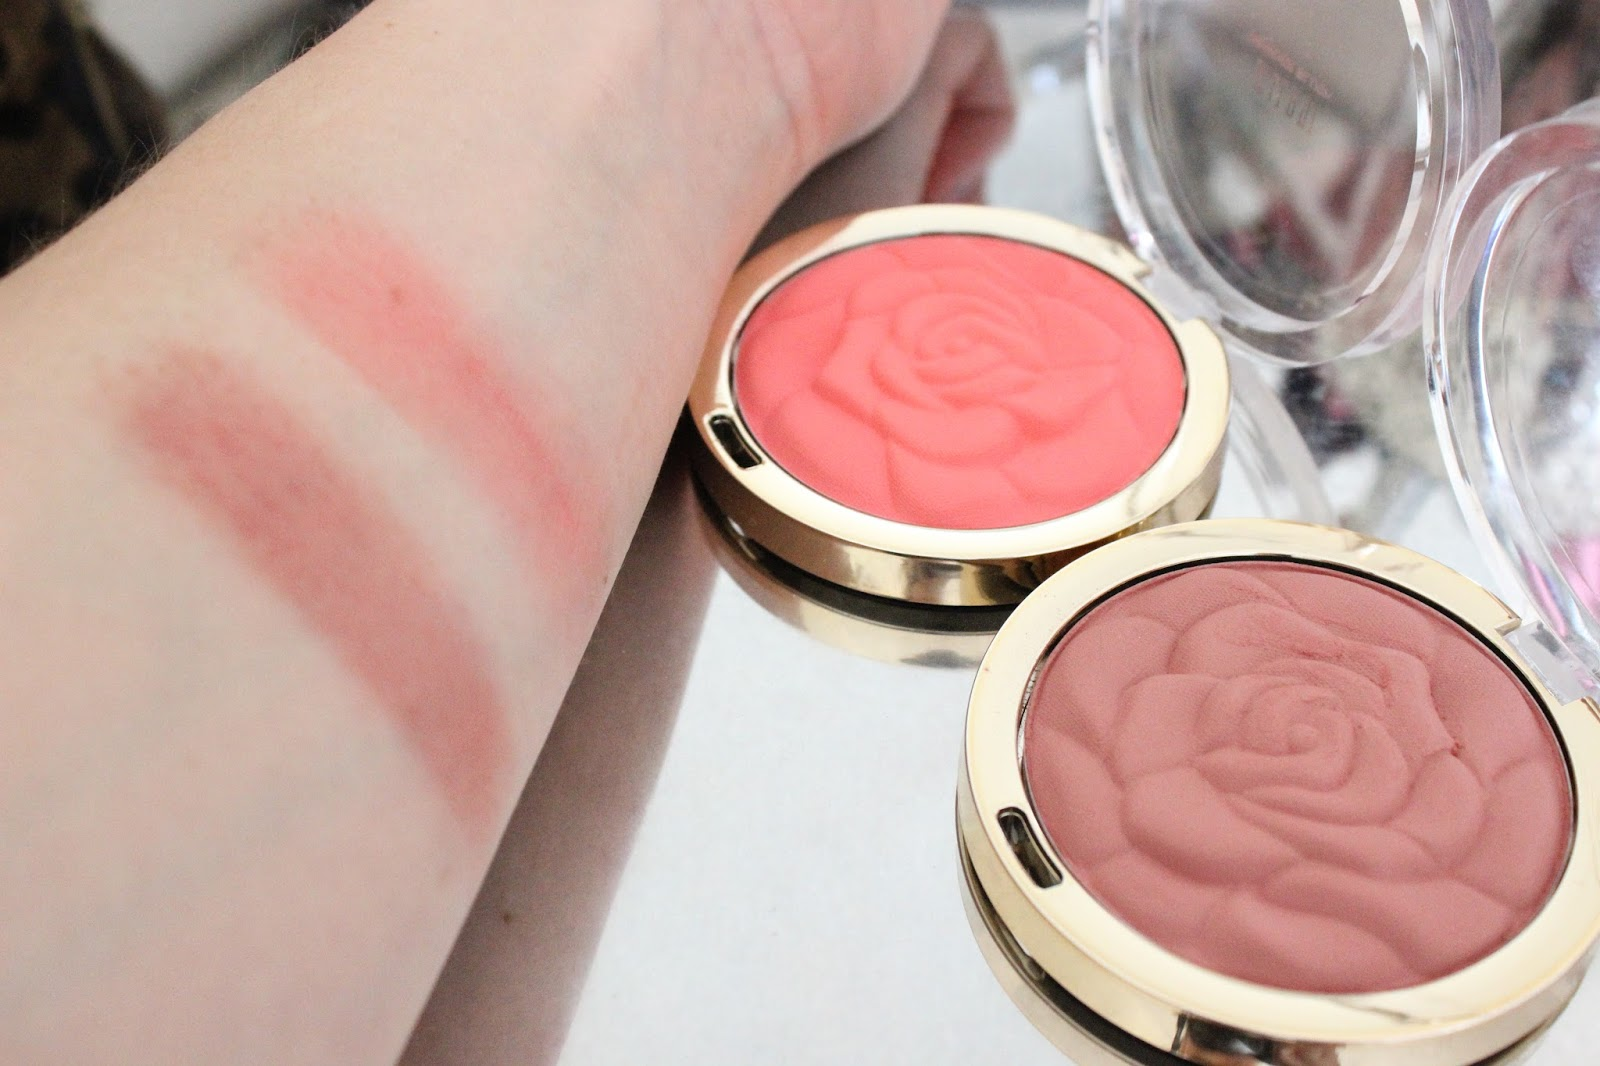 Milani Rose Powder Blush in Romantic Rose and Coral Cove